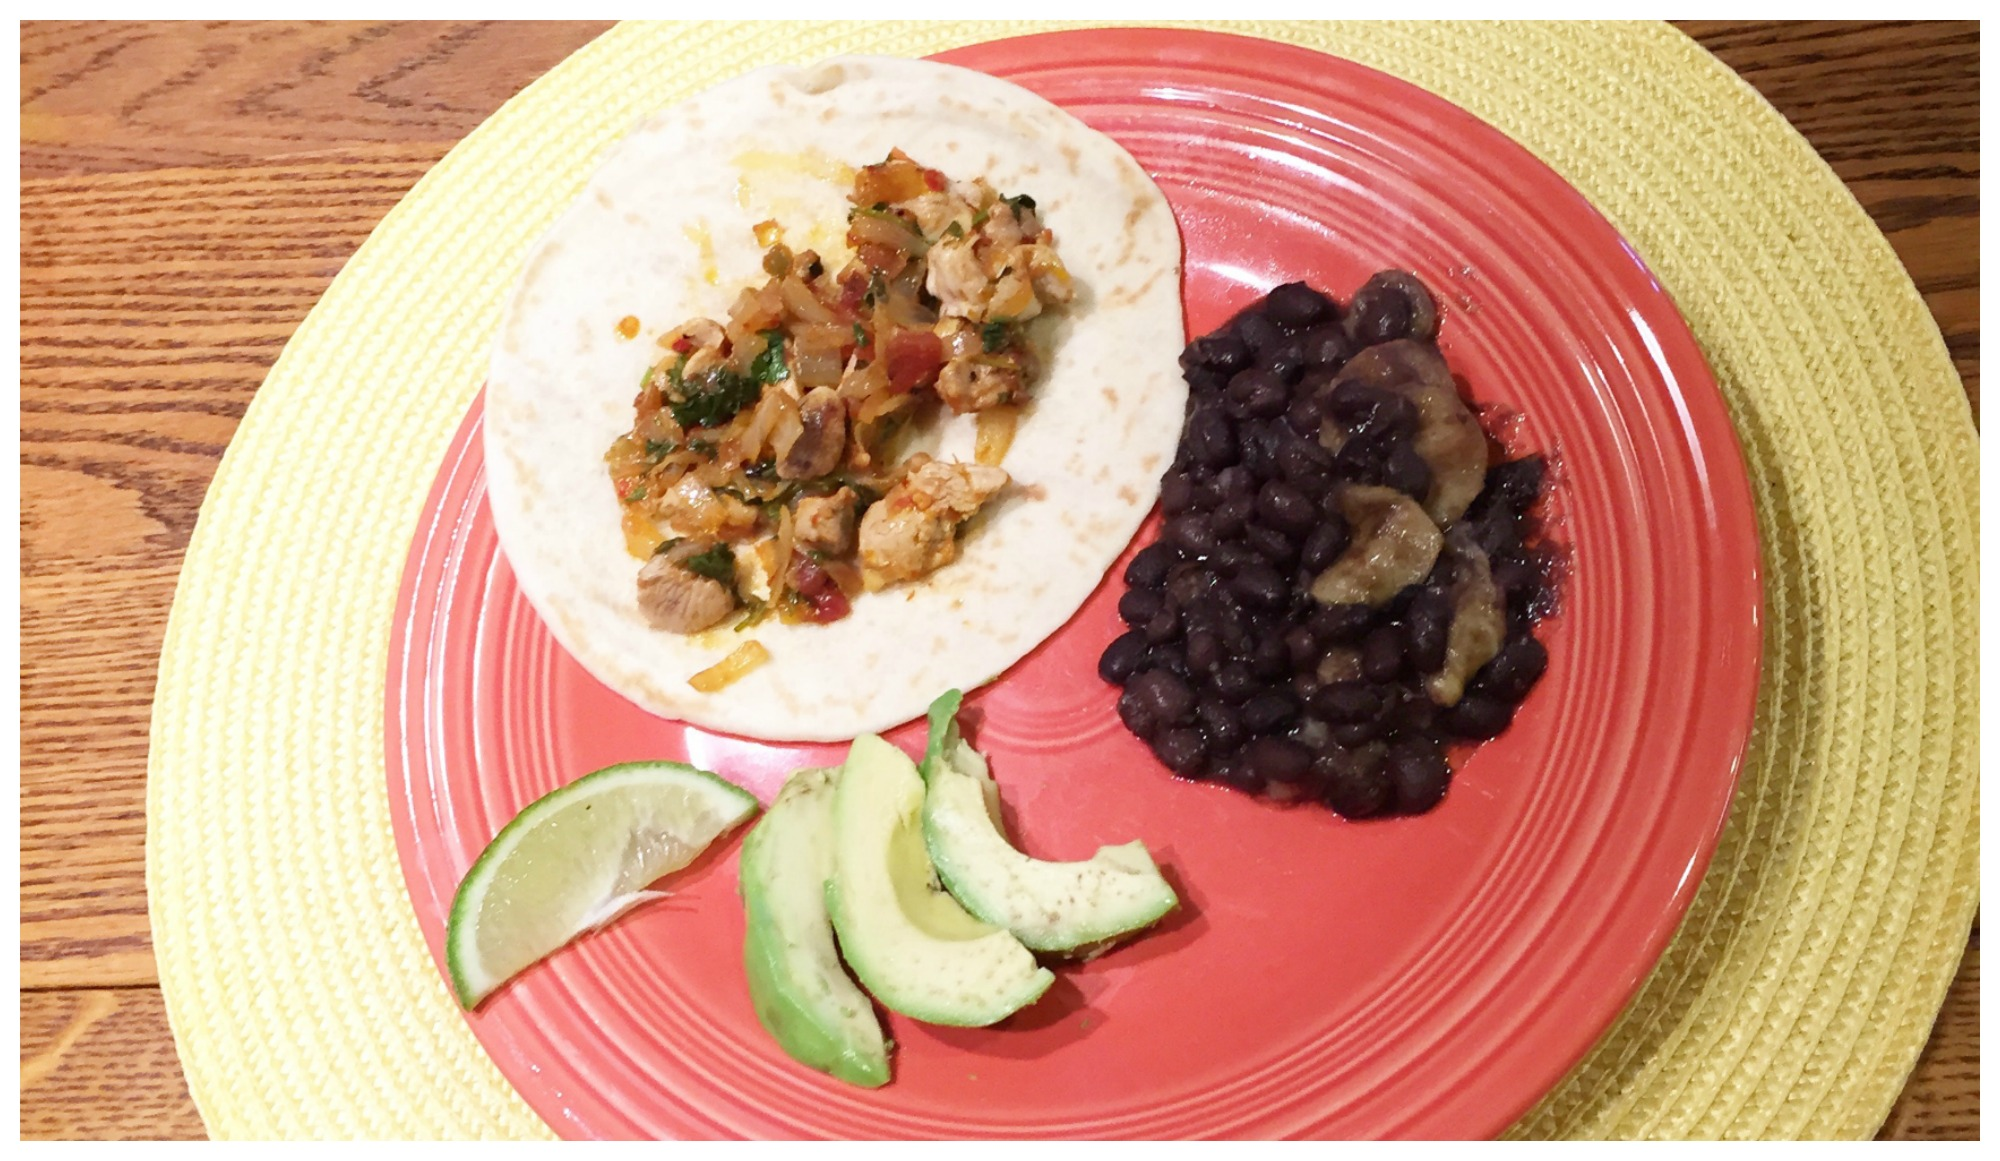 Pheasant Tacos with fried bananas and black beans